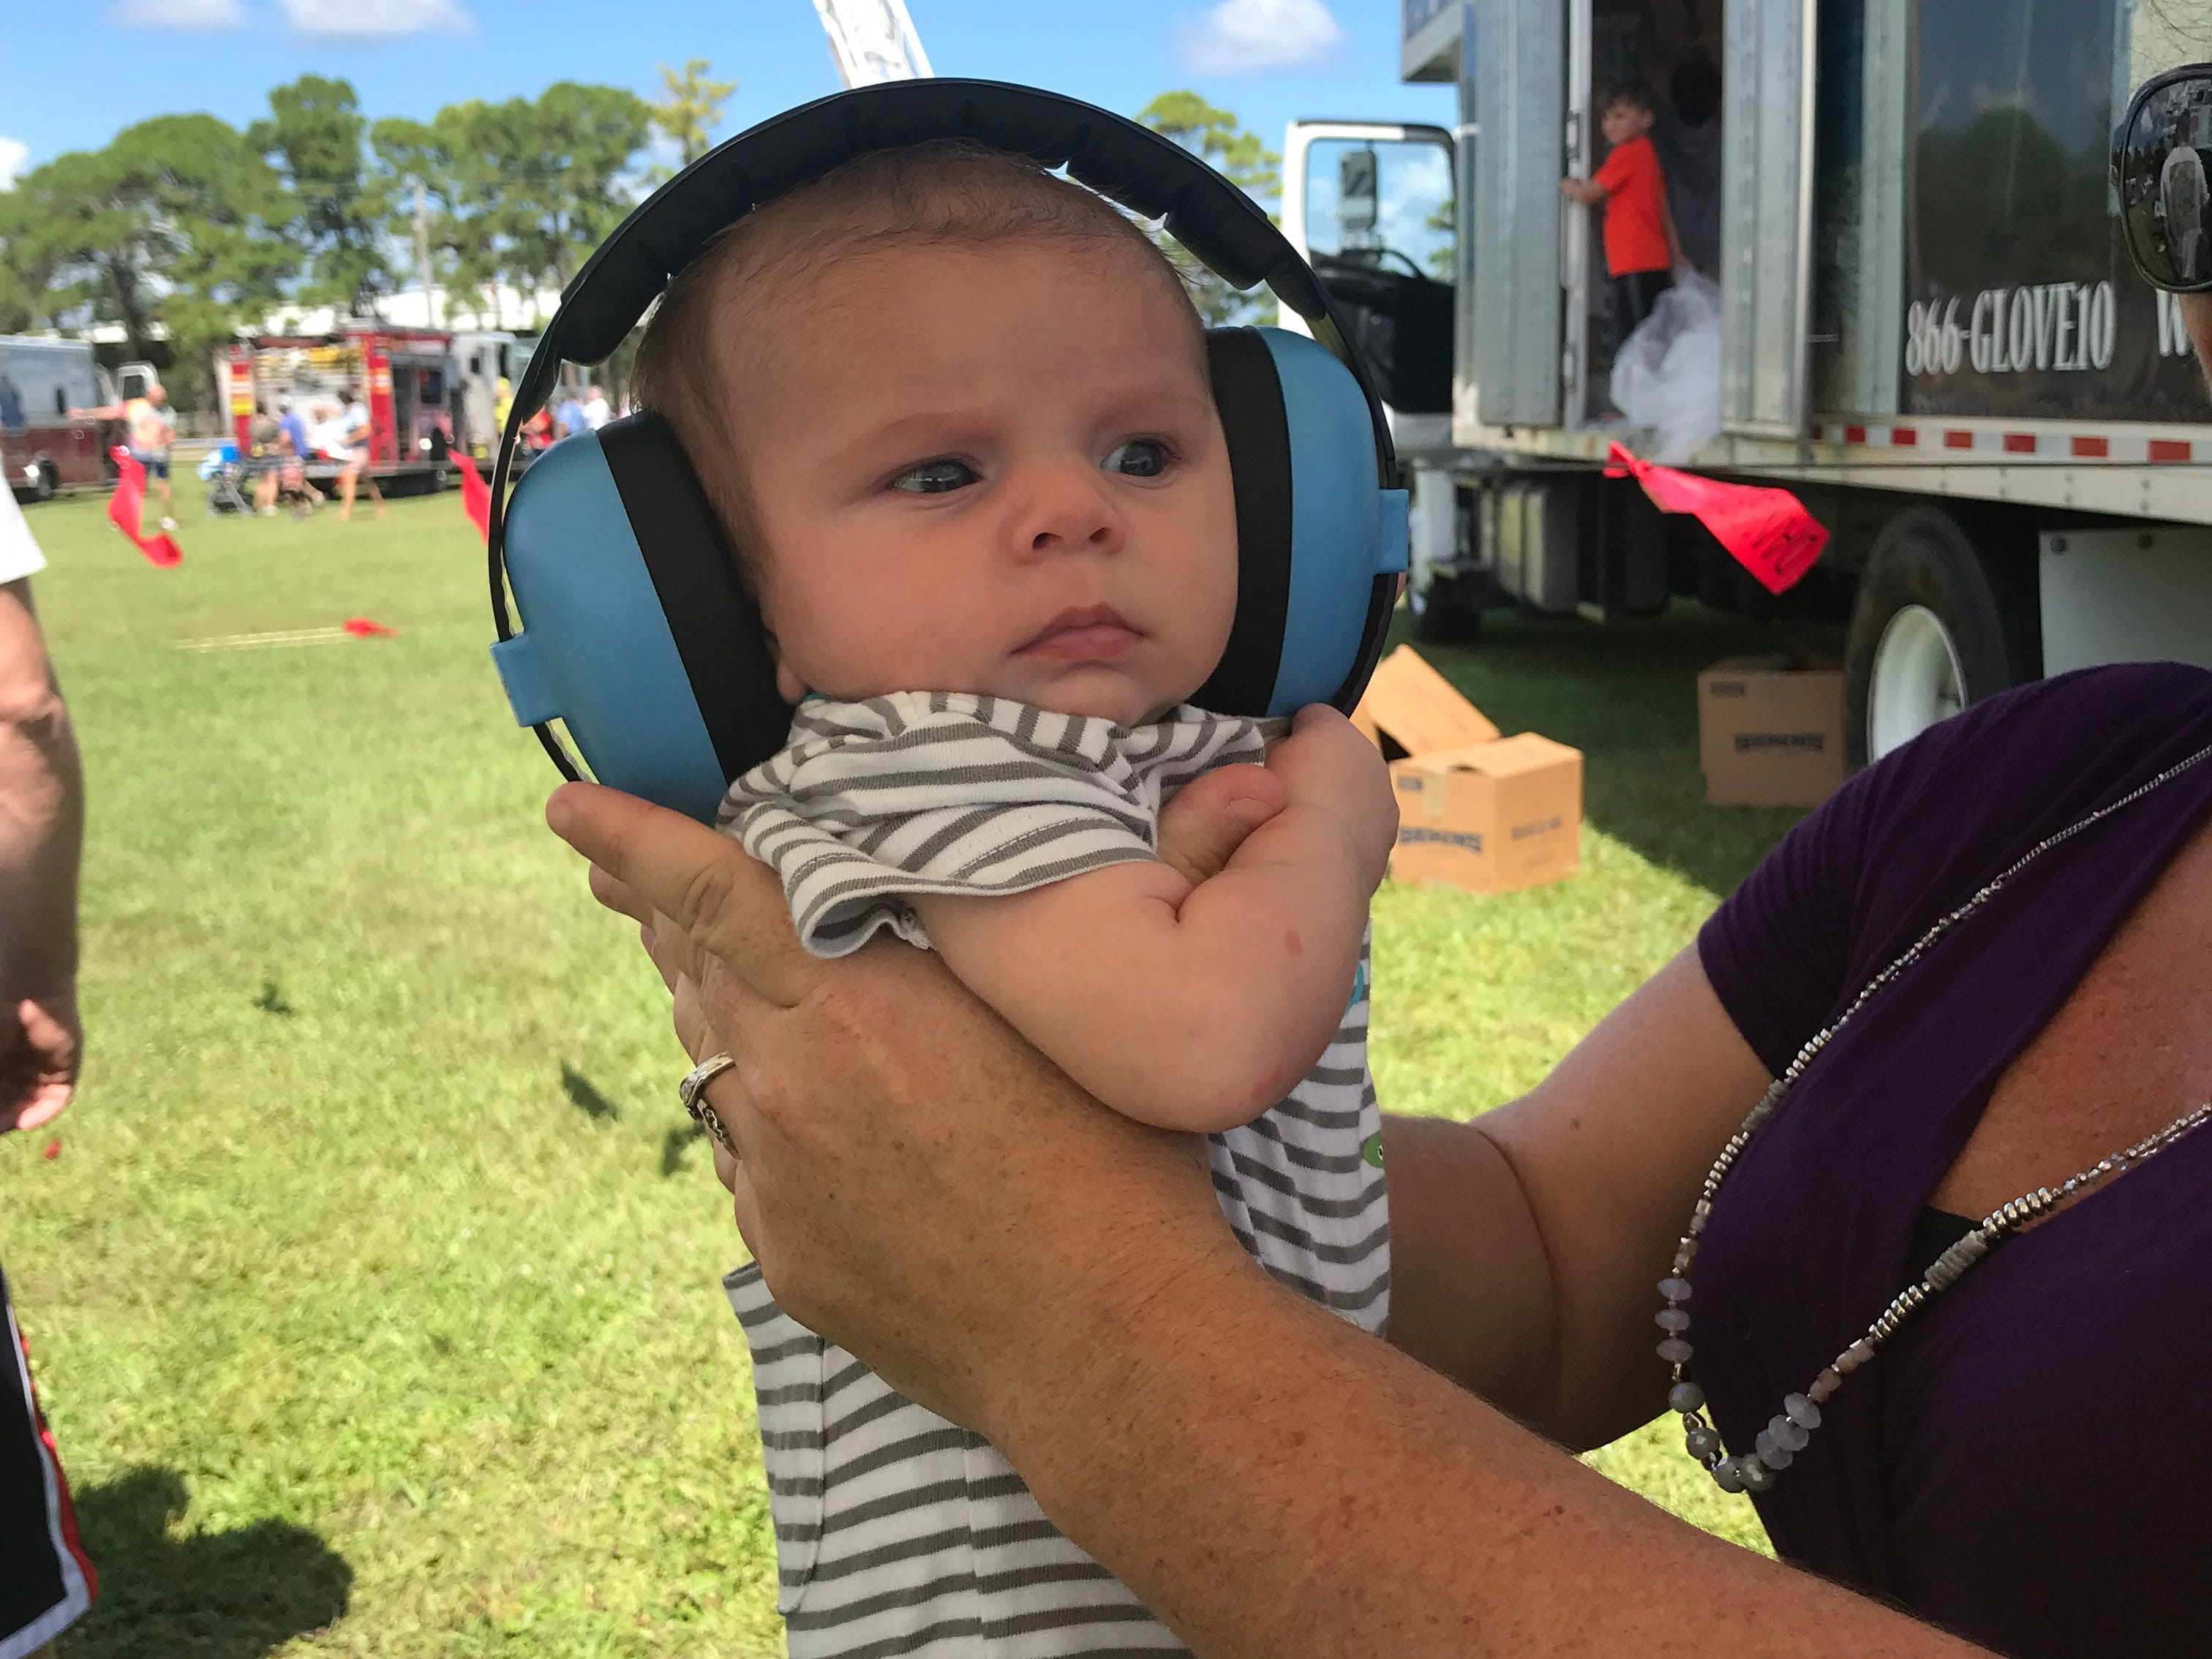 Head phones ensured this baby was not bothered by the honking trucks.